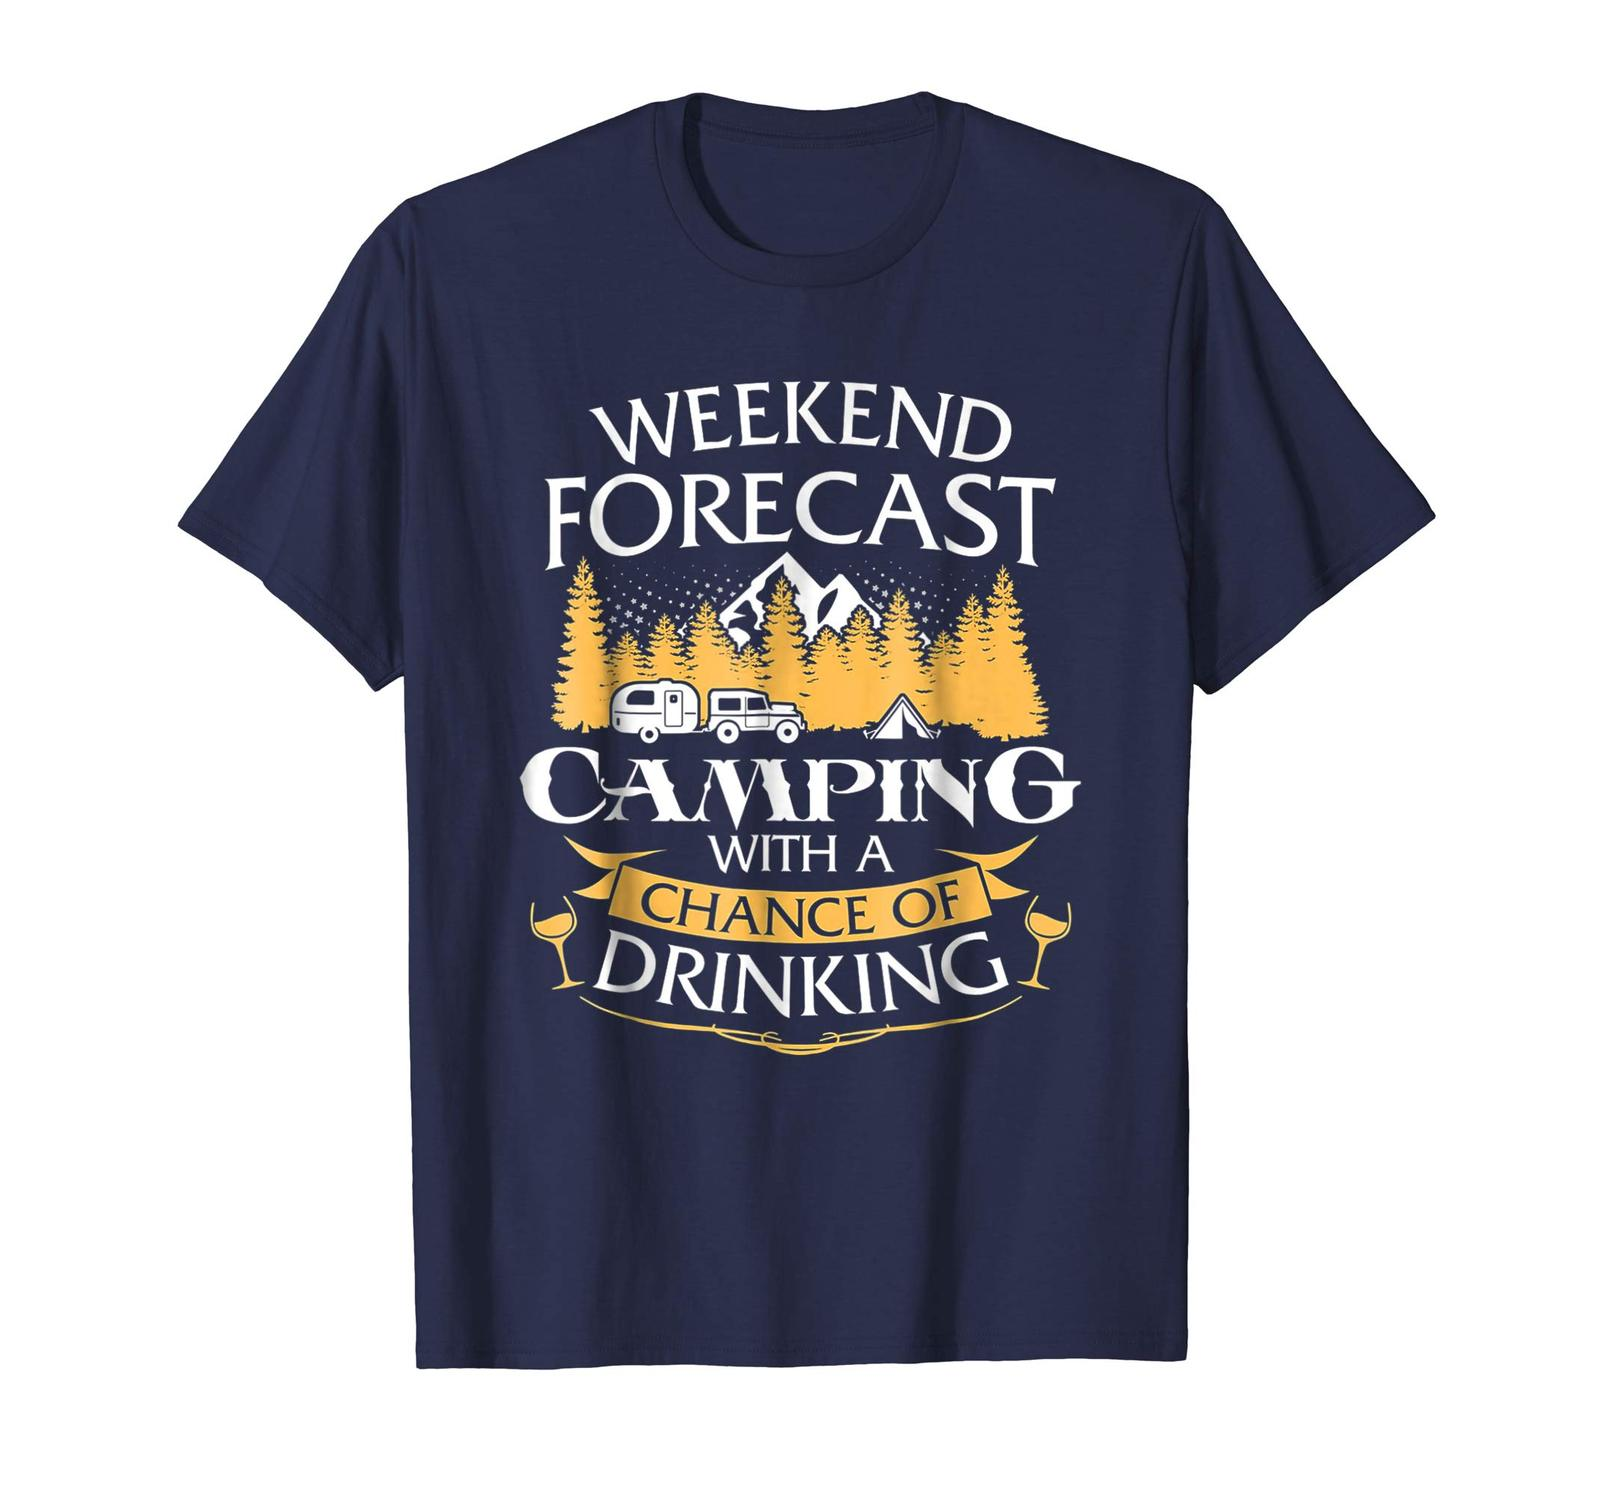 Primary image for Brother Shirts - Weekend Forecast Camping With A Chance Of Drinking Tee Men